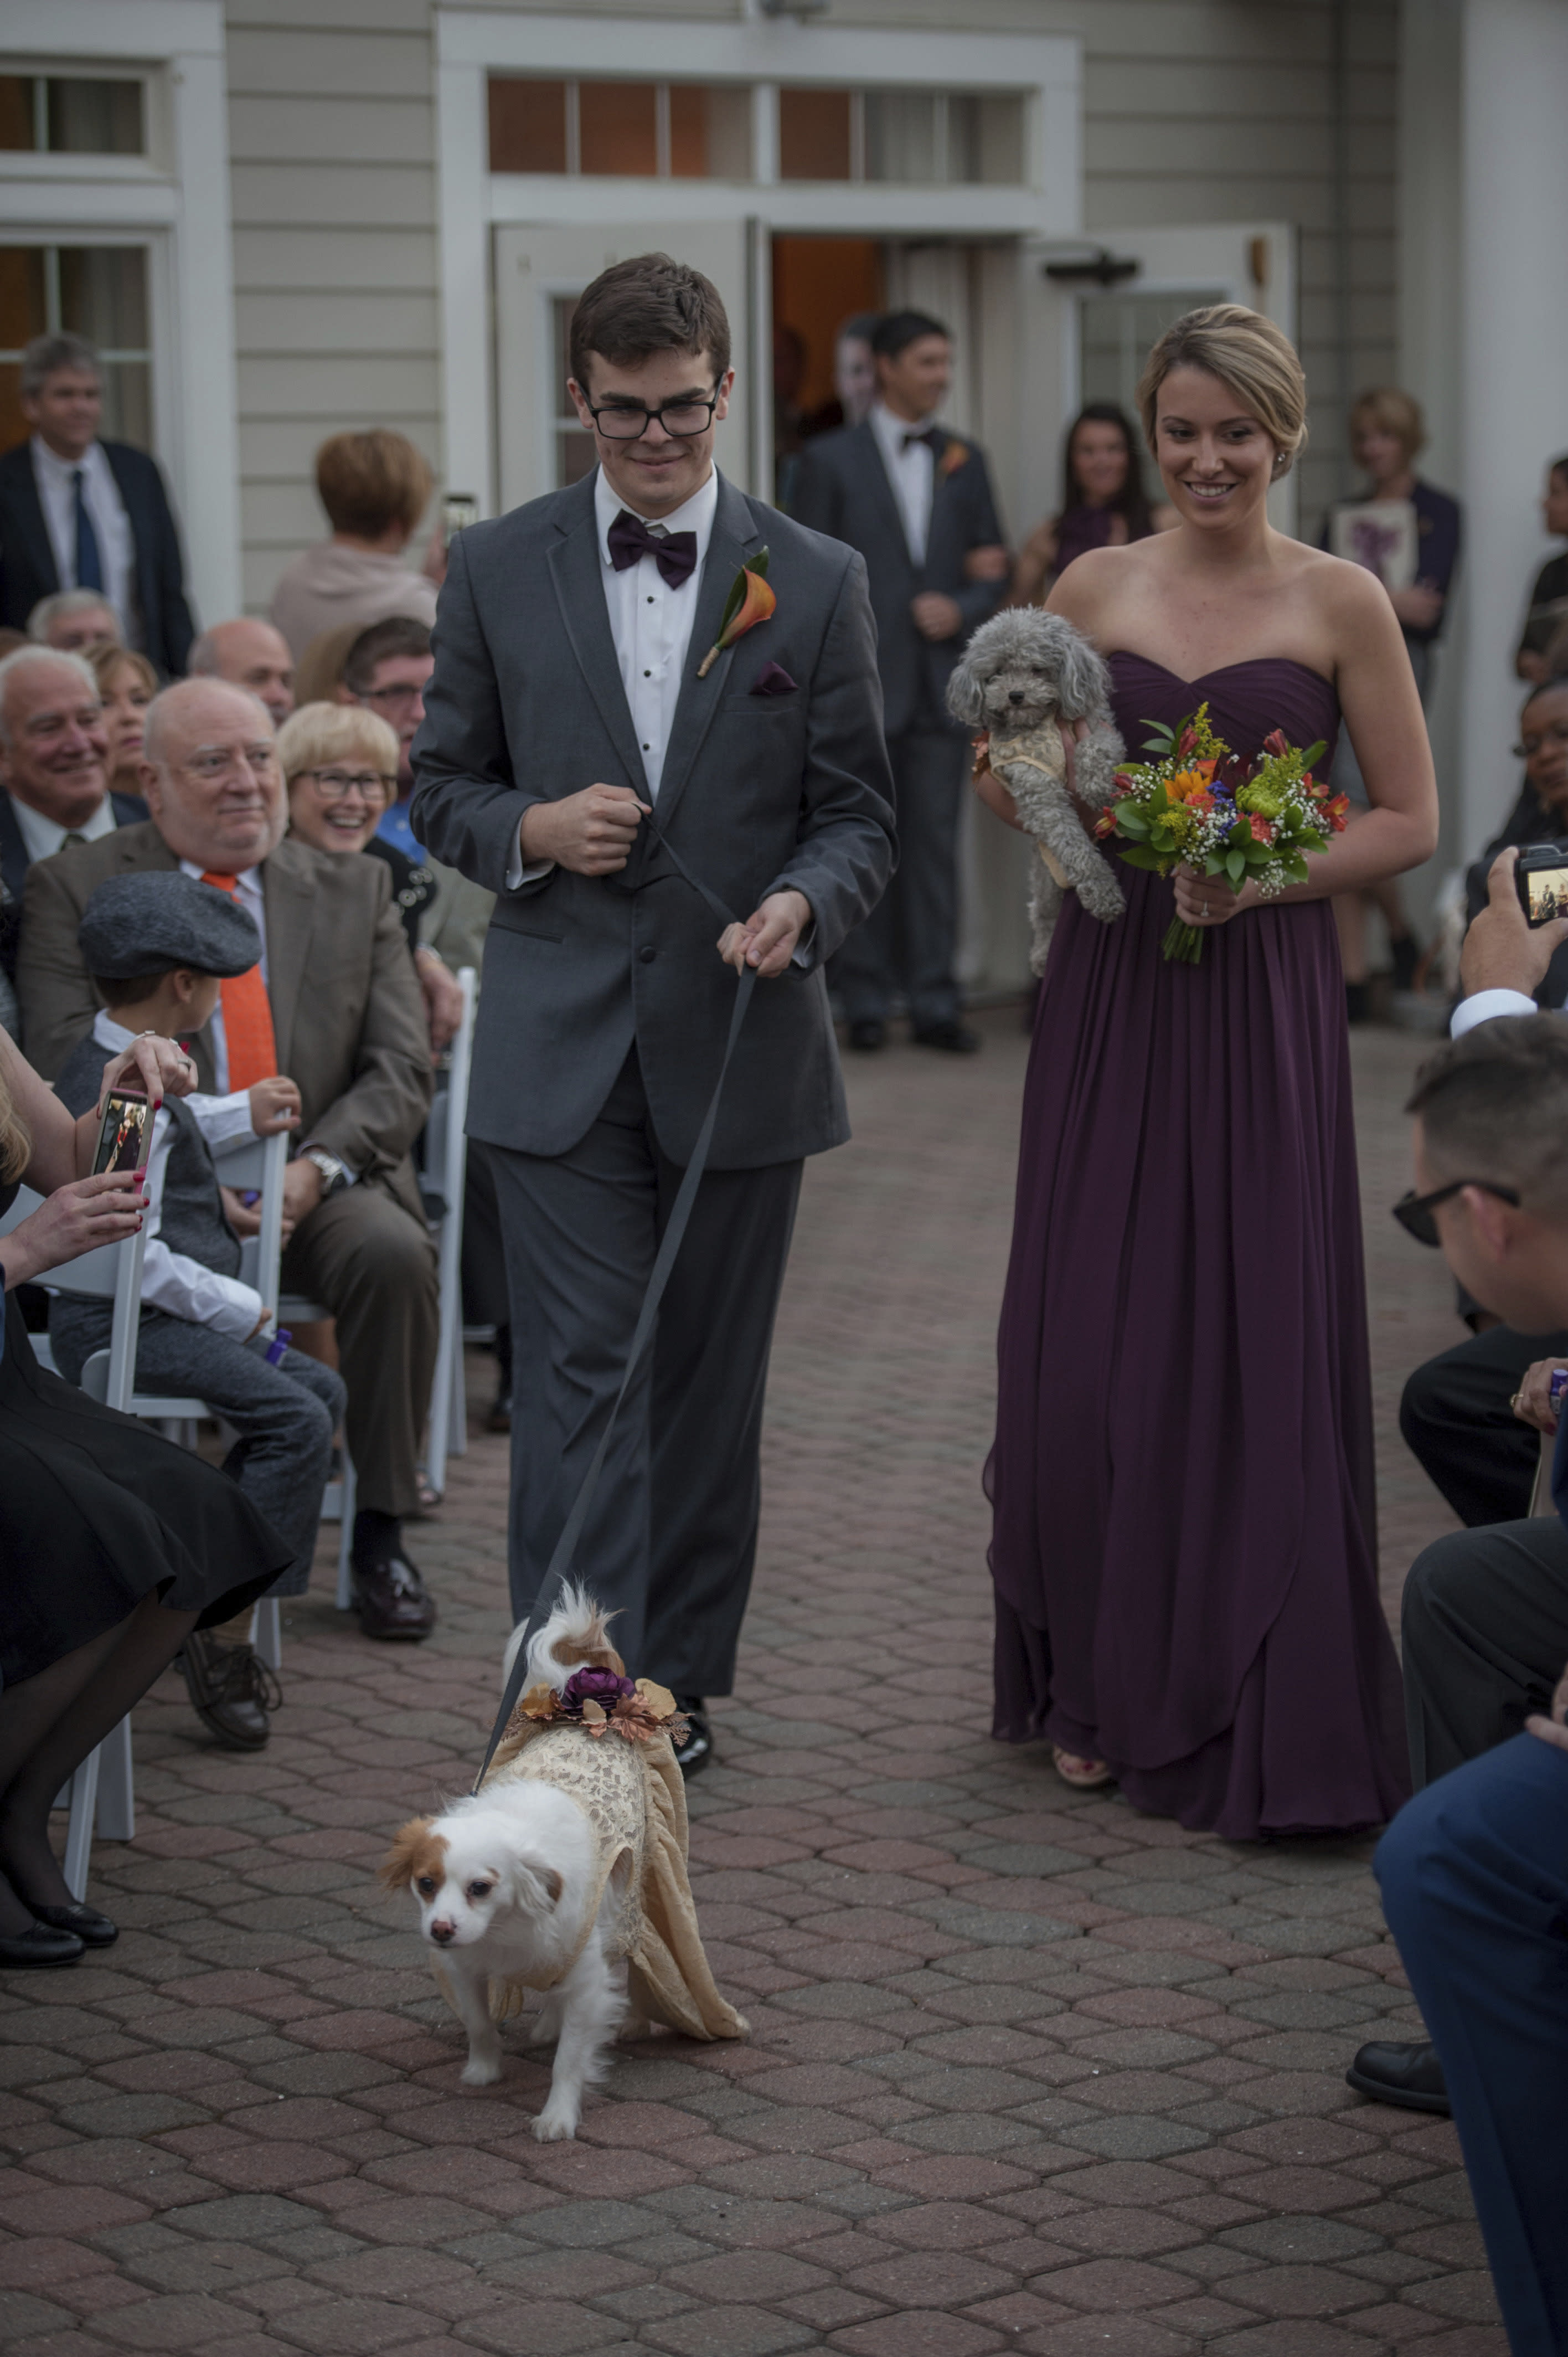 This Oct. 27, 2017 photo shows Ryan Curry and Laura Moylan walking Izzy, right, and Zoey down the aisle during the wedding of Kelly Curry and Patrick St. Onge in Haddam, Conn. The bride and groom's dogs took part in the ceremony. It's no longer unusual for brides and grooms to include pets in their wedding photos or even in the ceremony. But it can be tough to manage that along with everything else. (Jeffrey Herget/Studio 393 via AP)